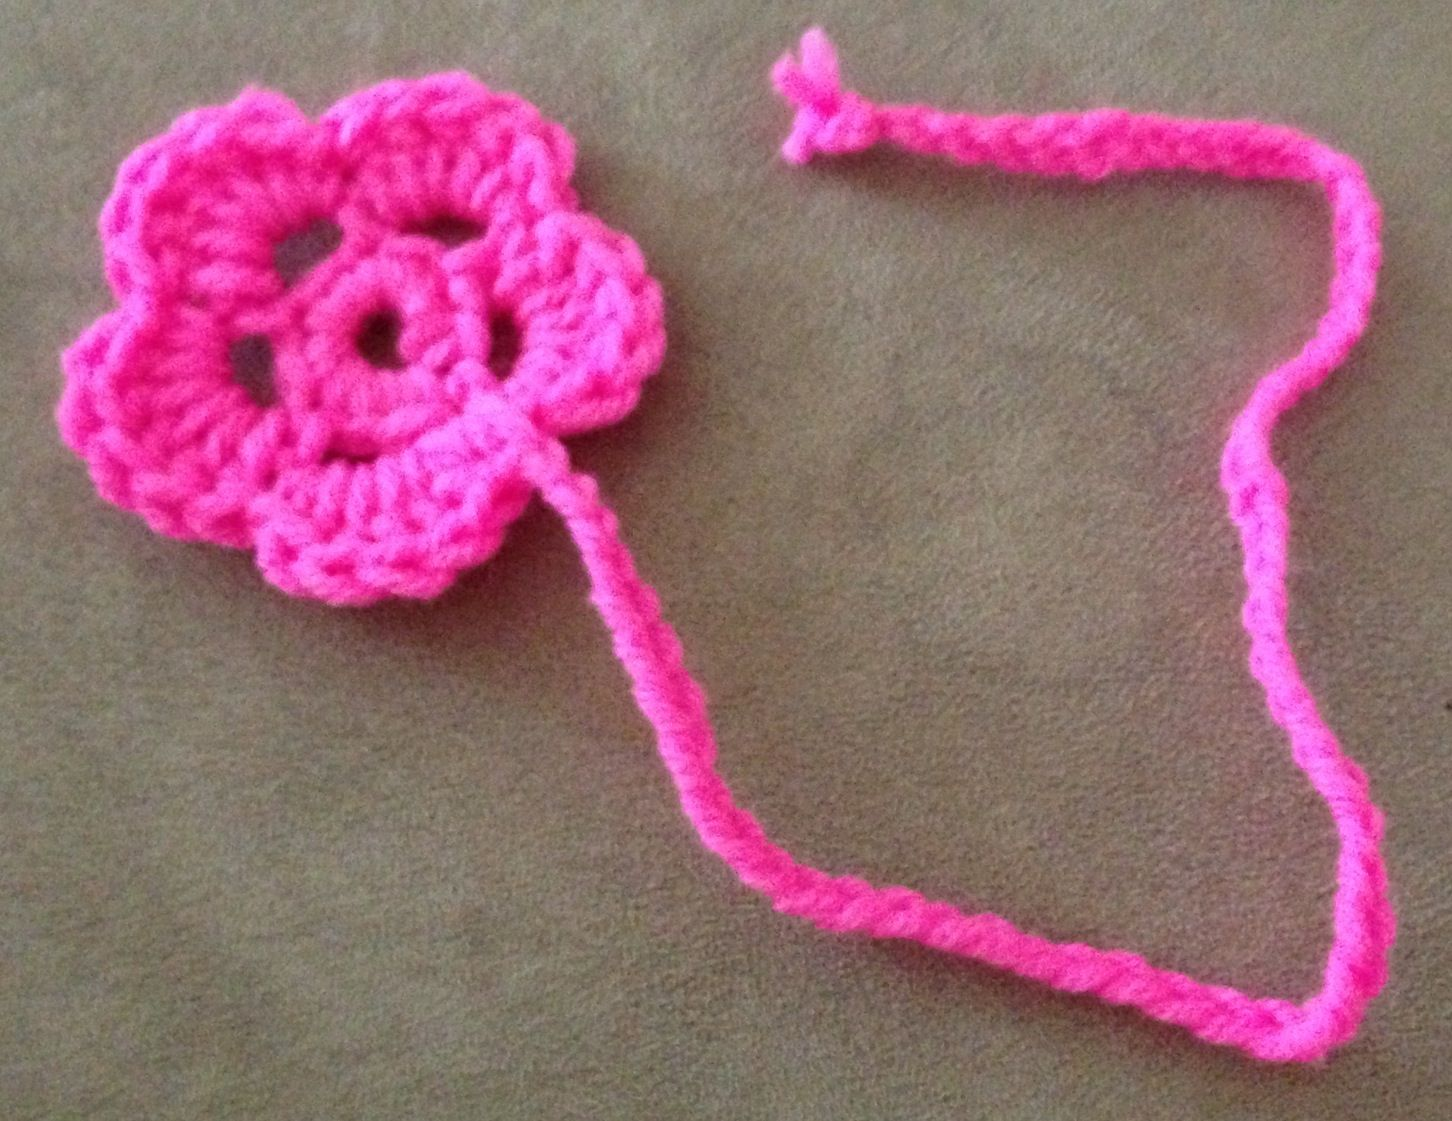 Crochet Bookmarks : Crocheted bookmark Crochet Bookmarks Pinterest